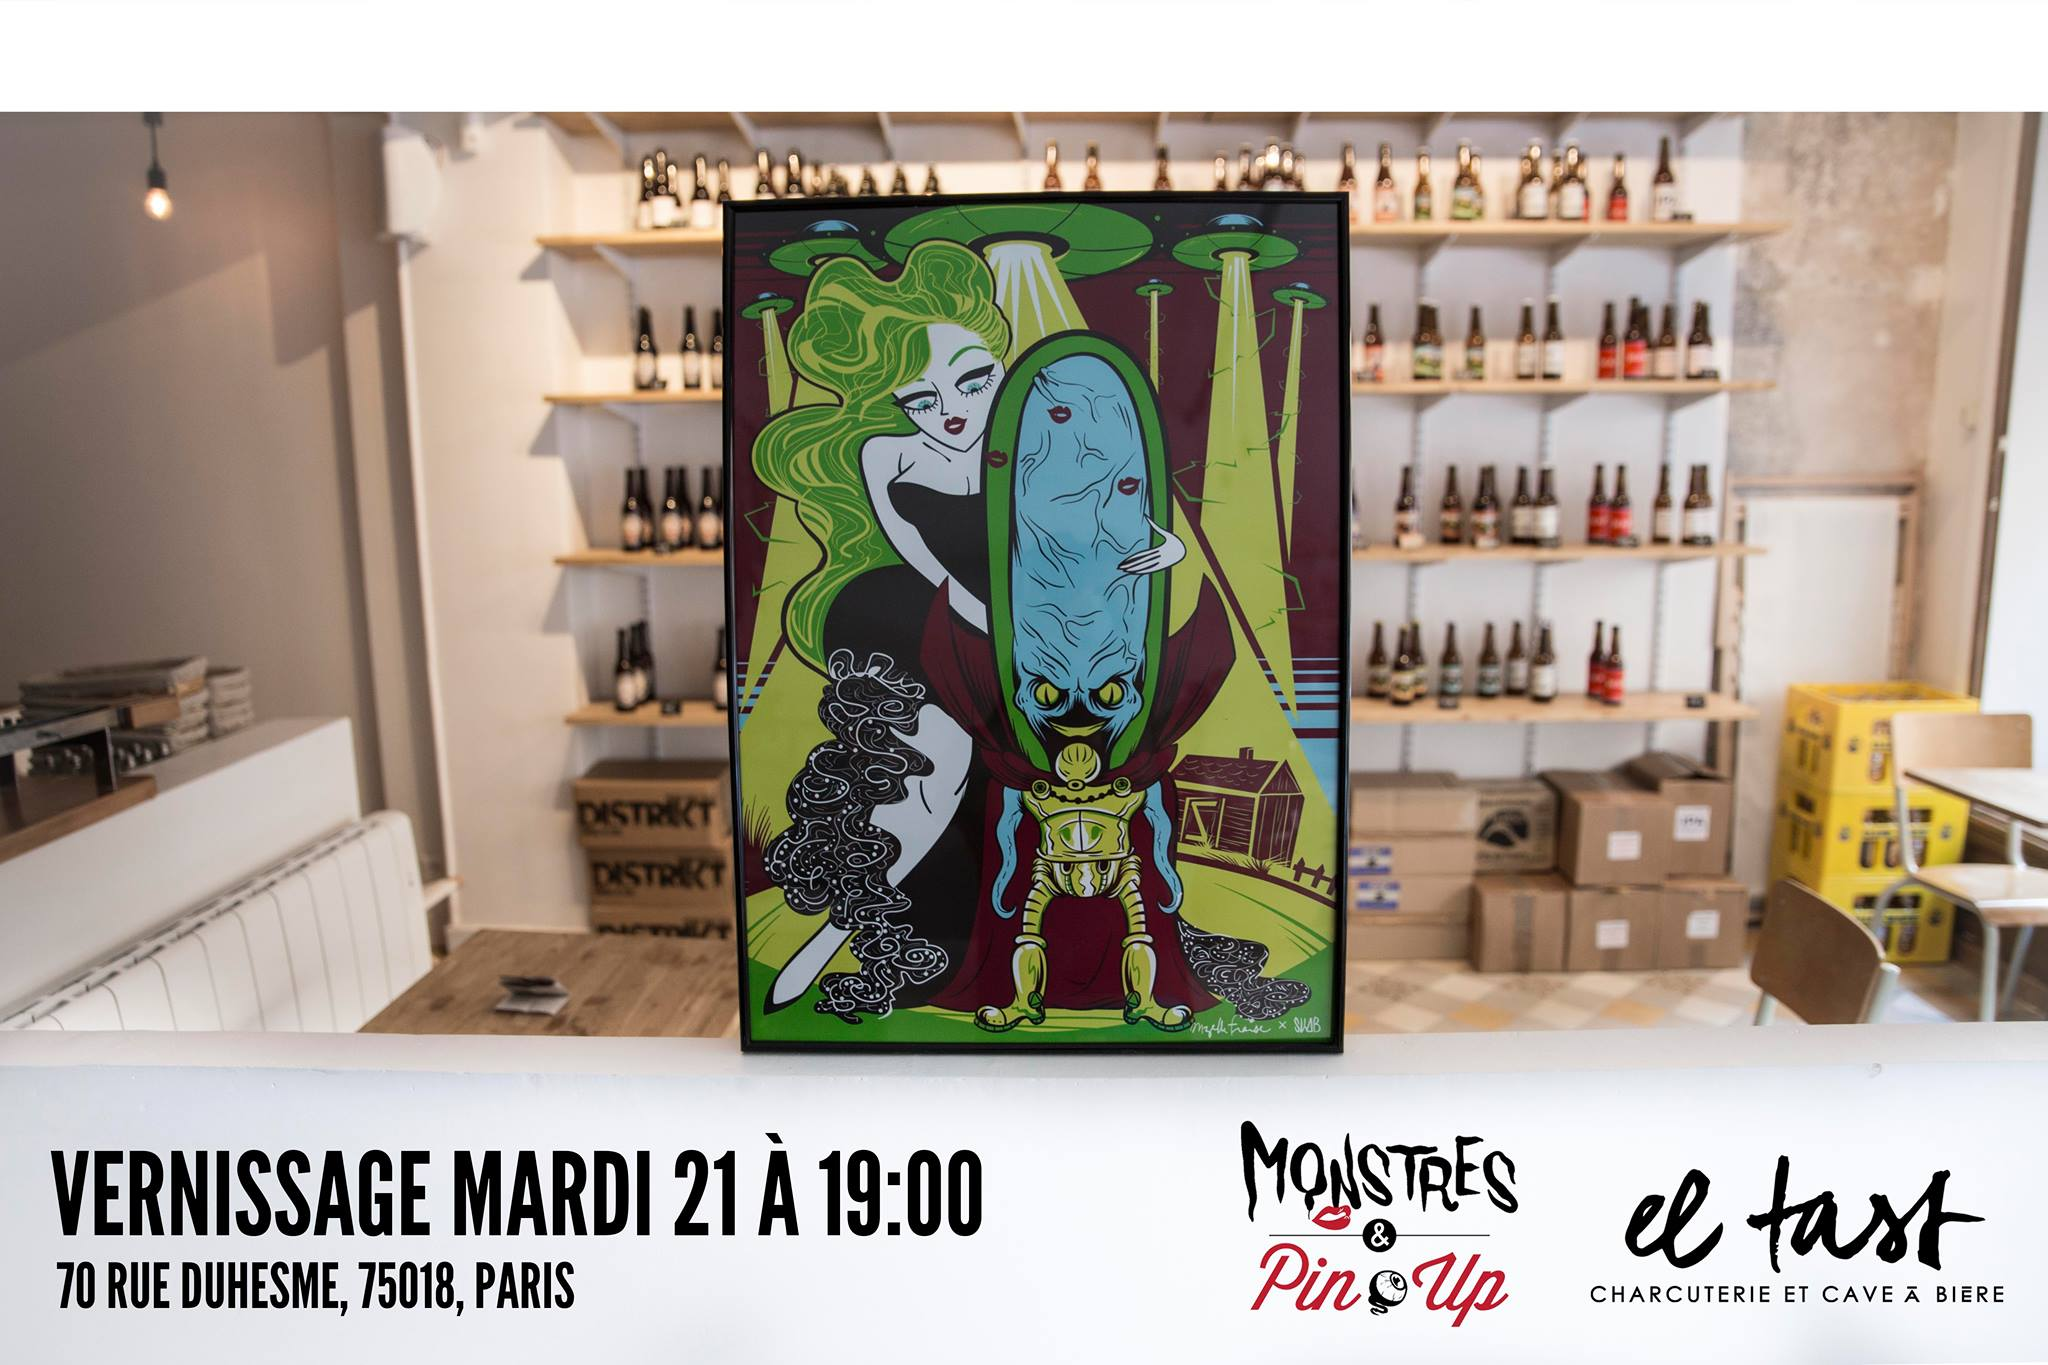 expo monstres & pin-up el tast